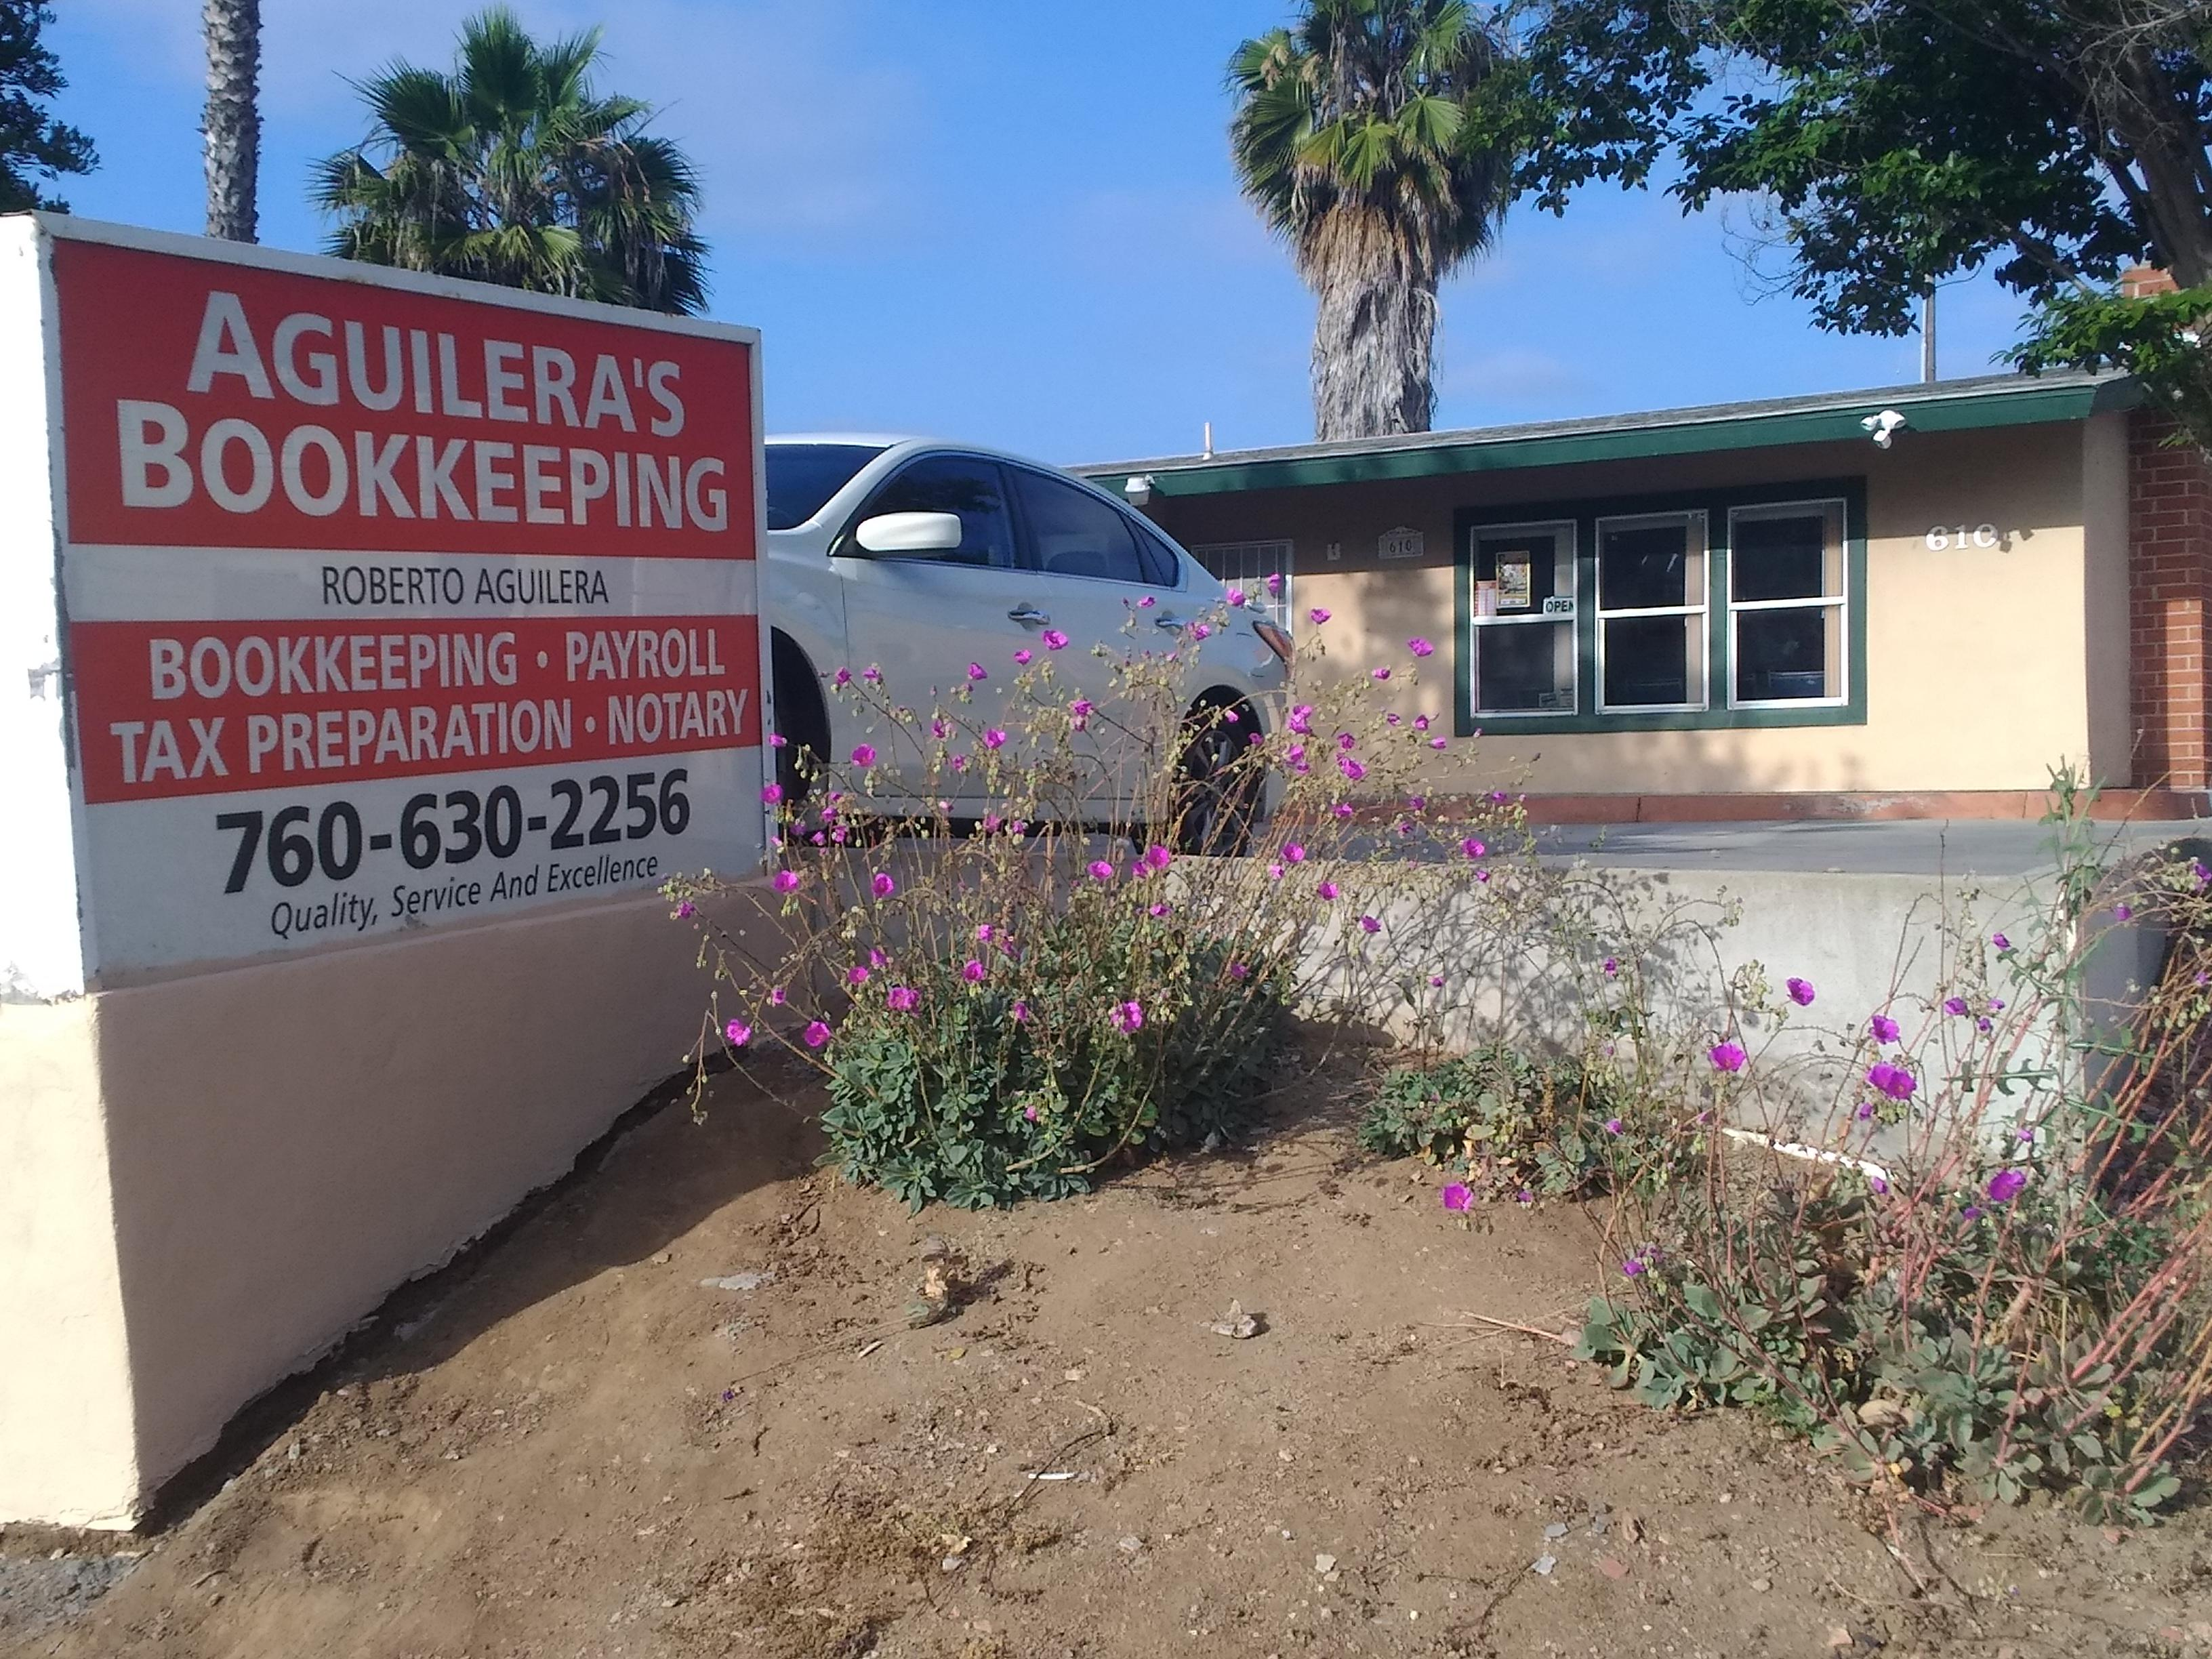 Aguilera's Bookkeeping